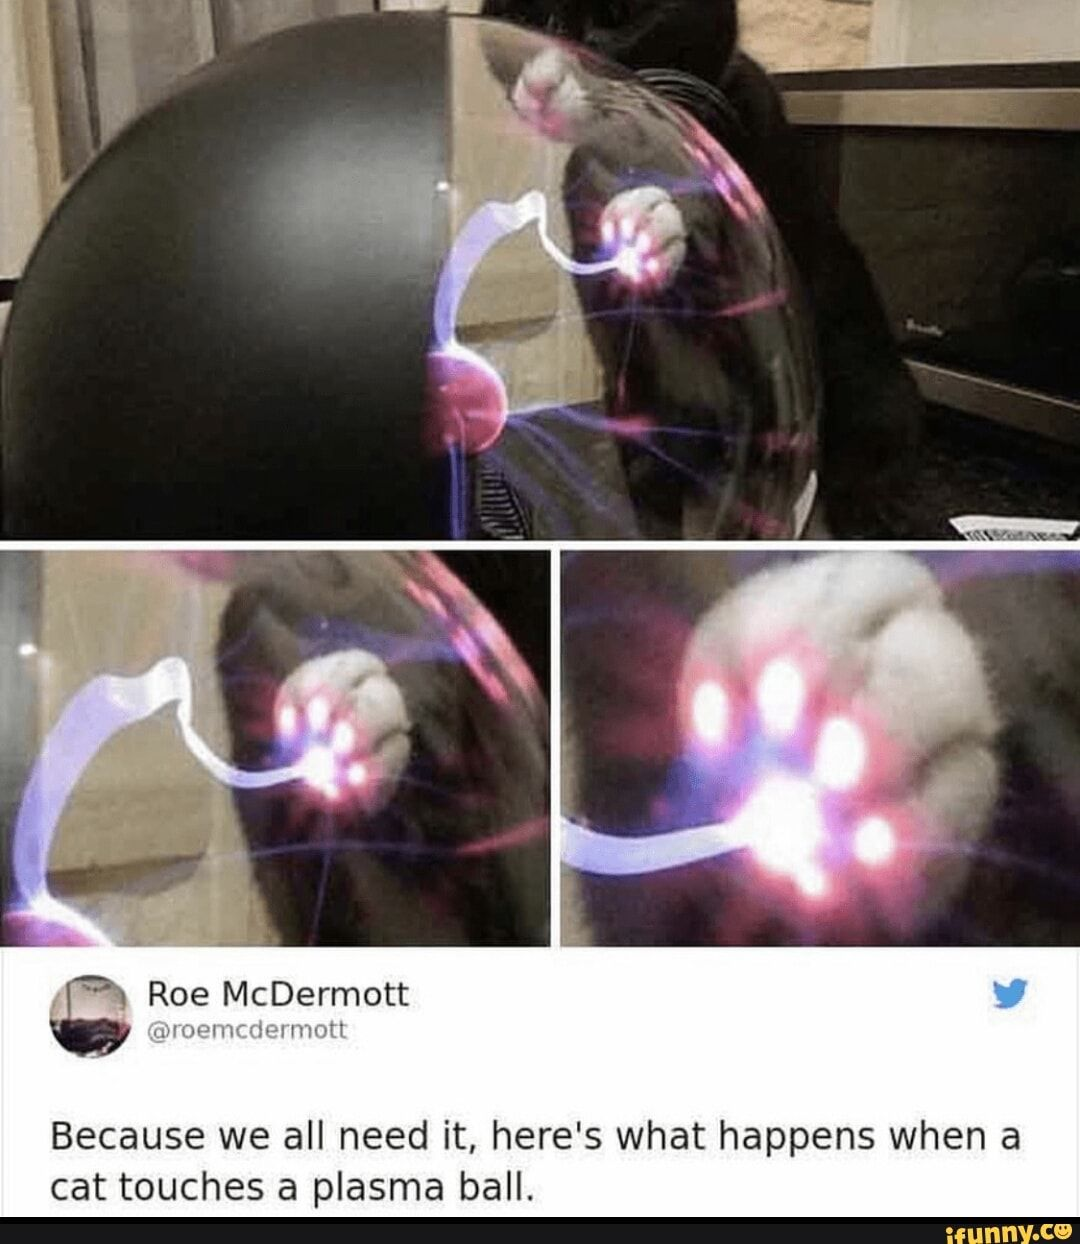 Picture memes CJa4Y4m77: 4 comments — iFunny